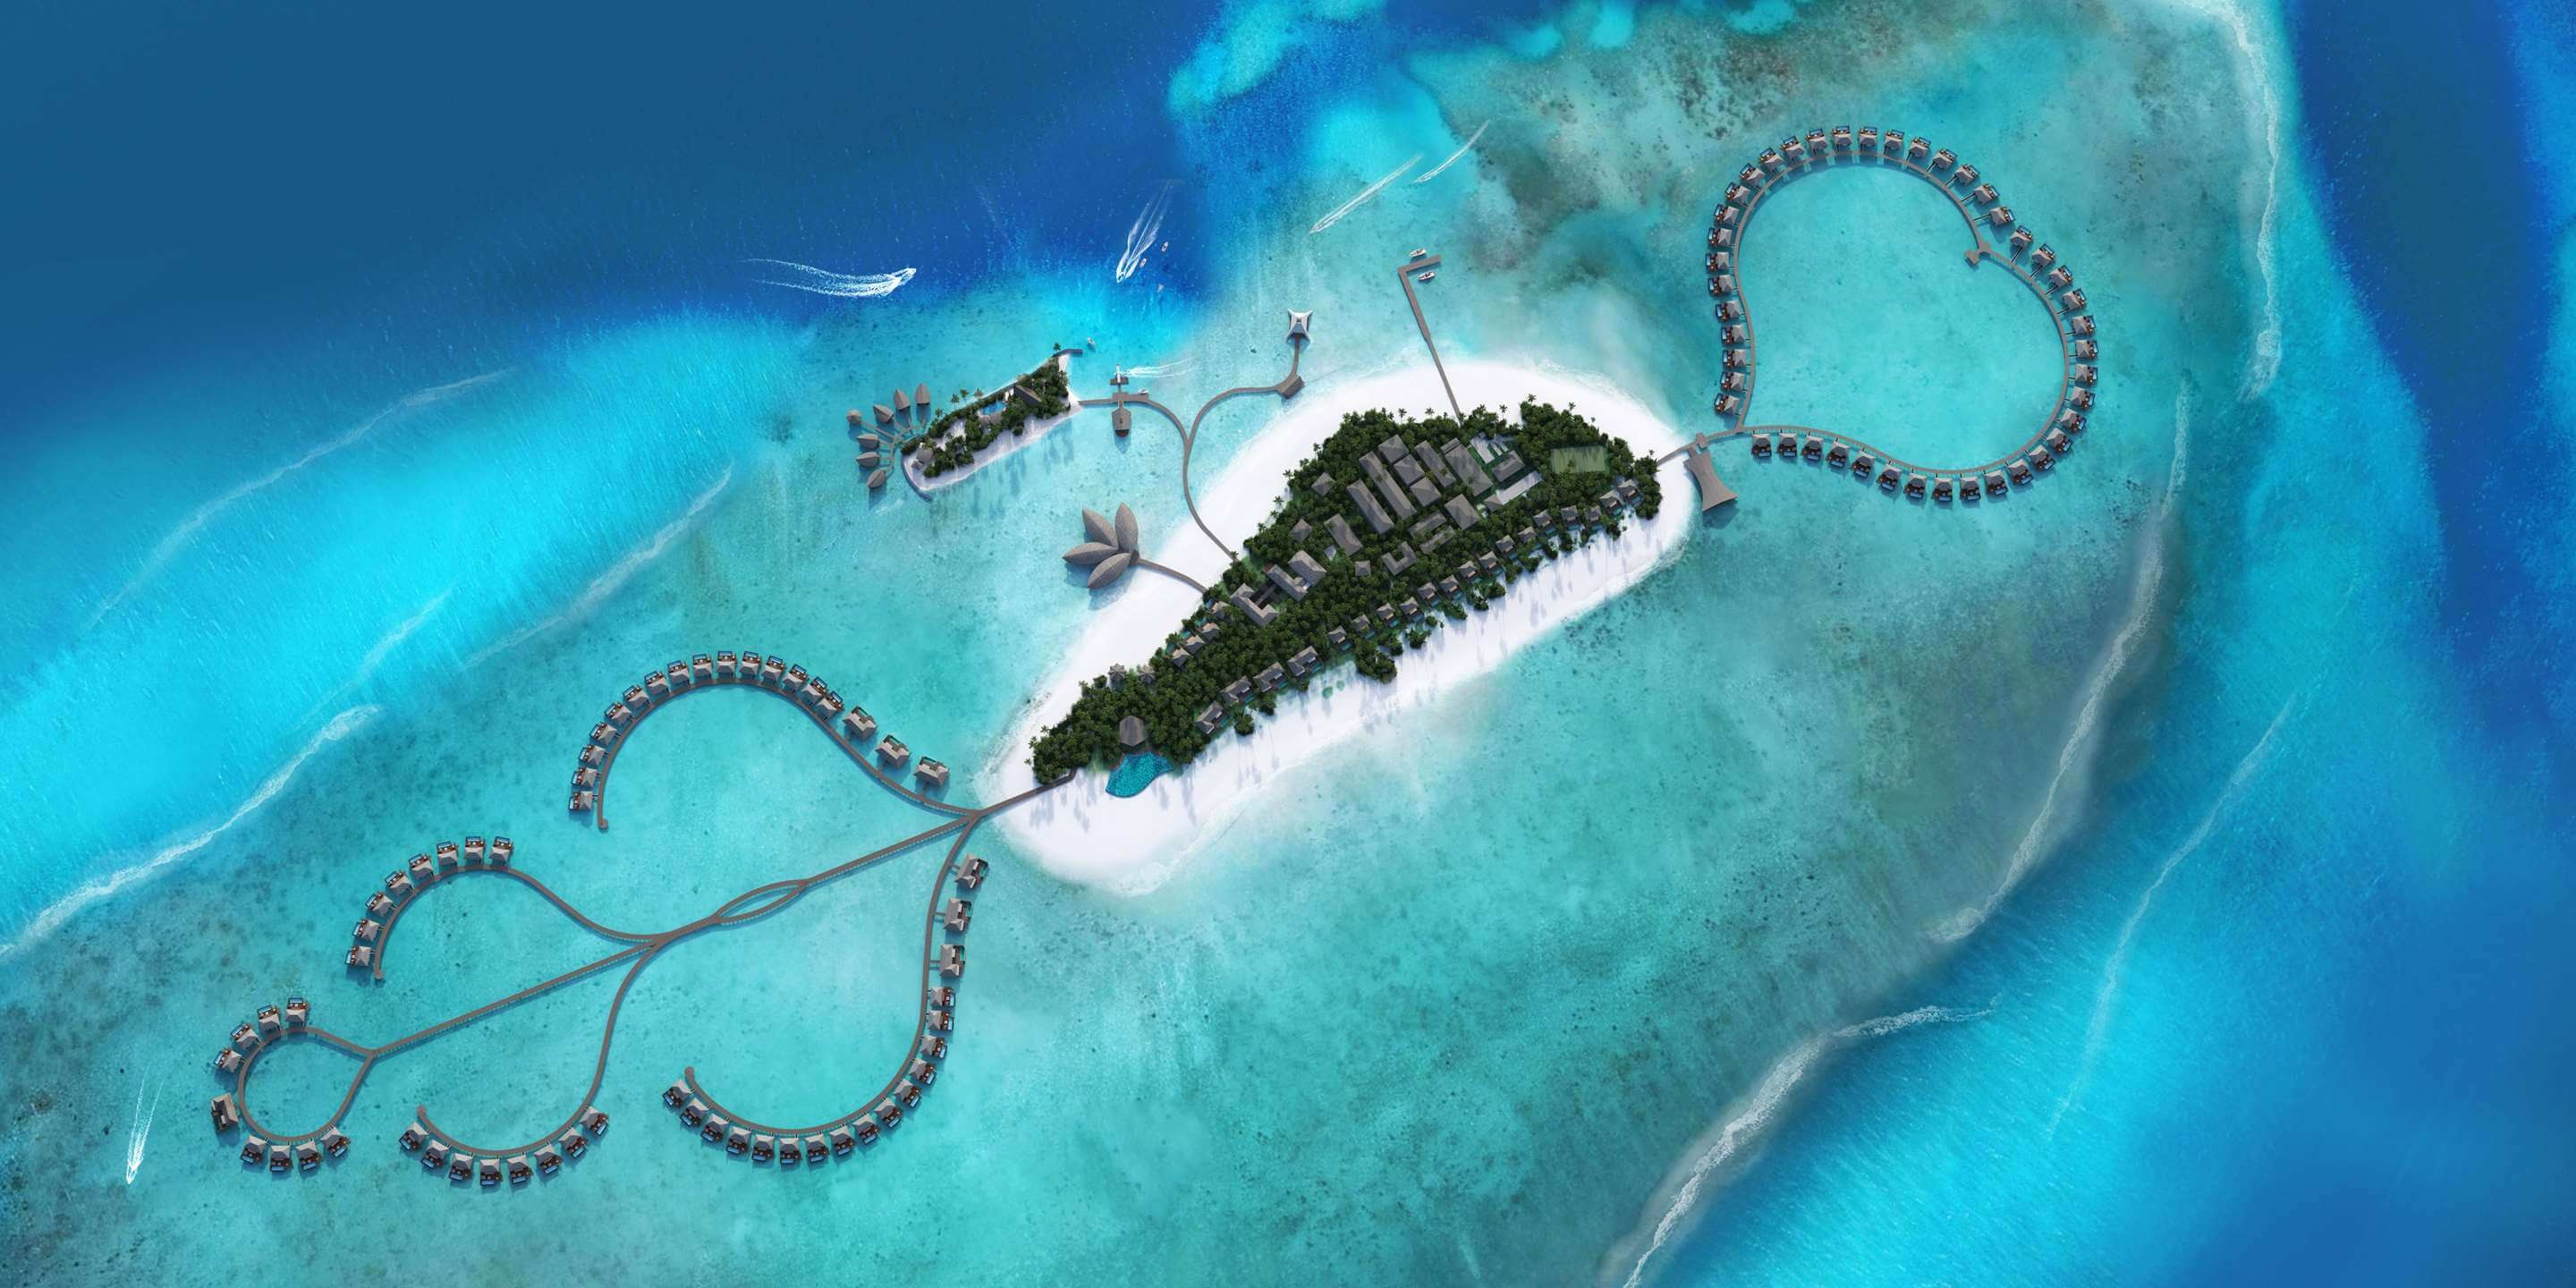 news-main-new-opening-radisson-blu-resort-maldives.1596637081.jpg